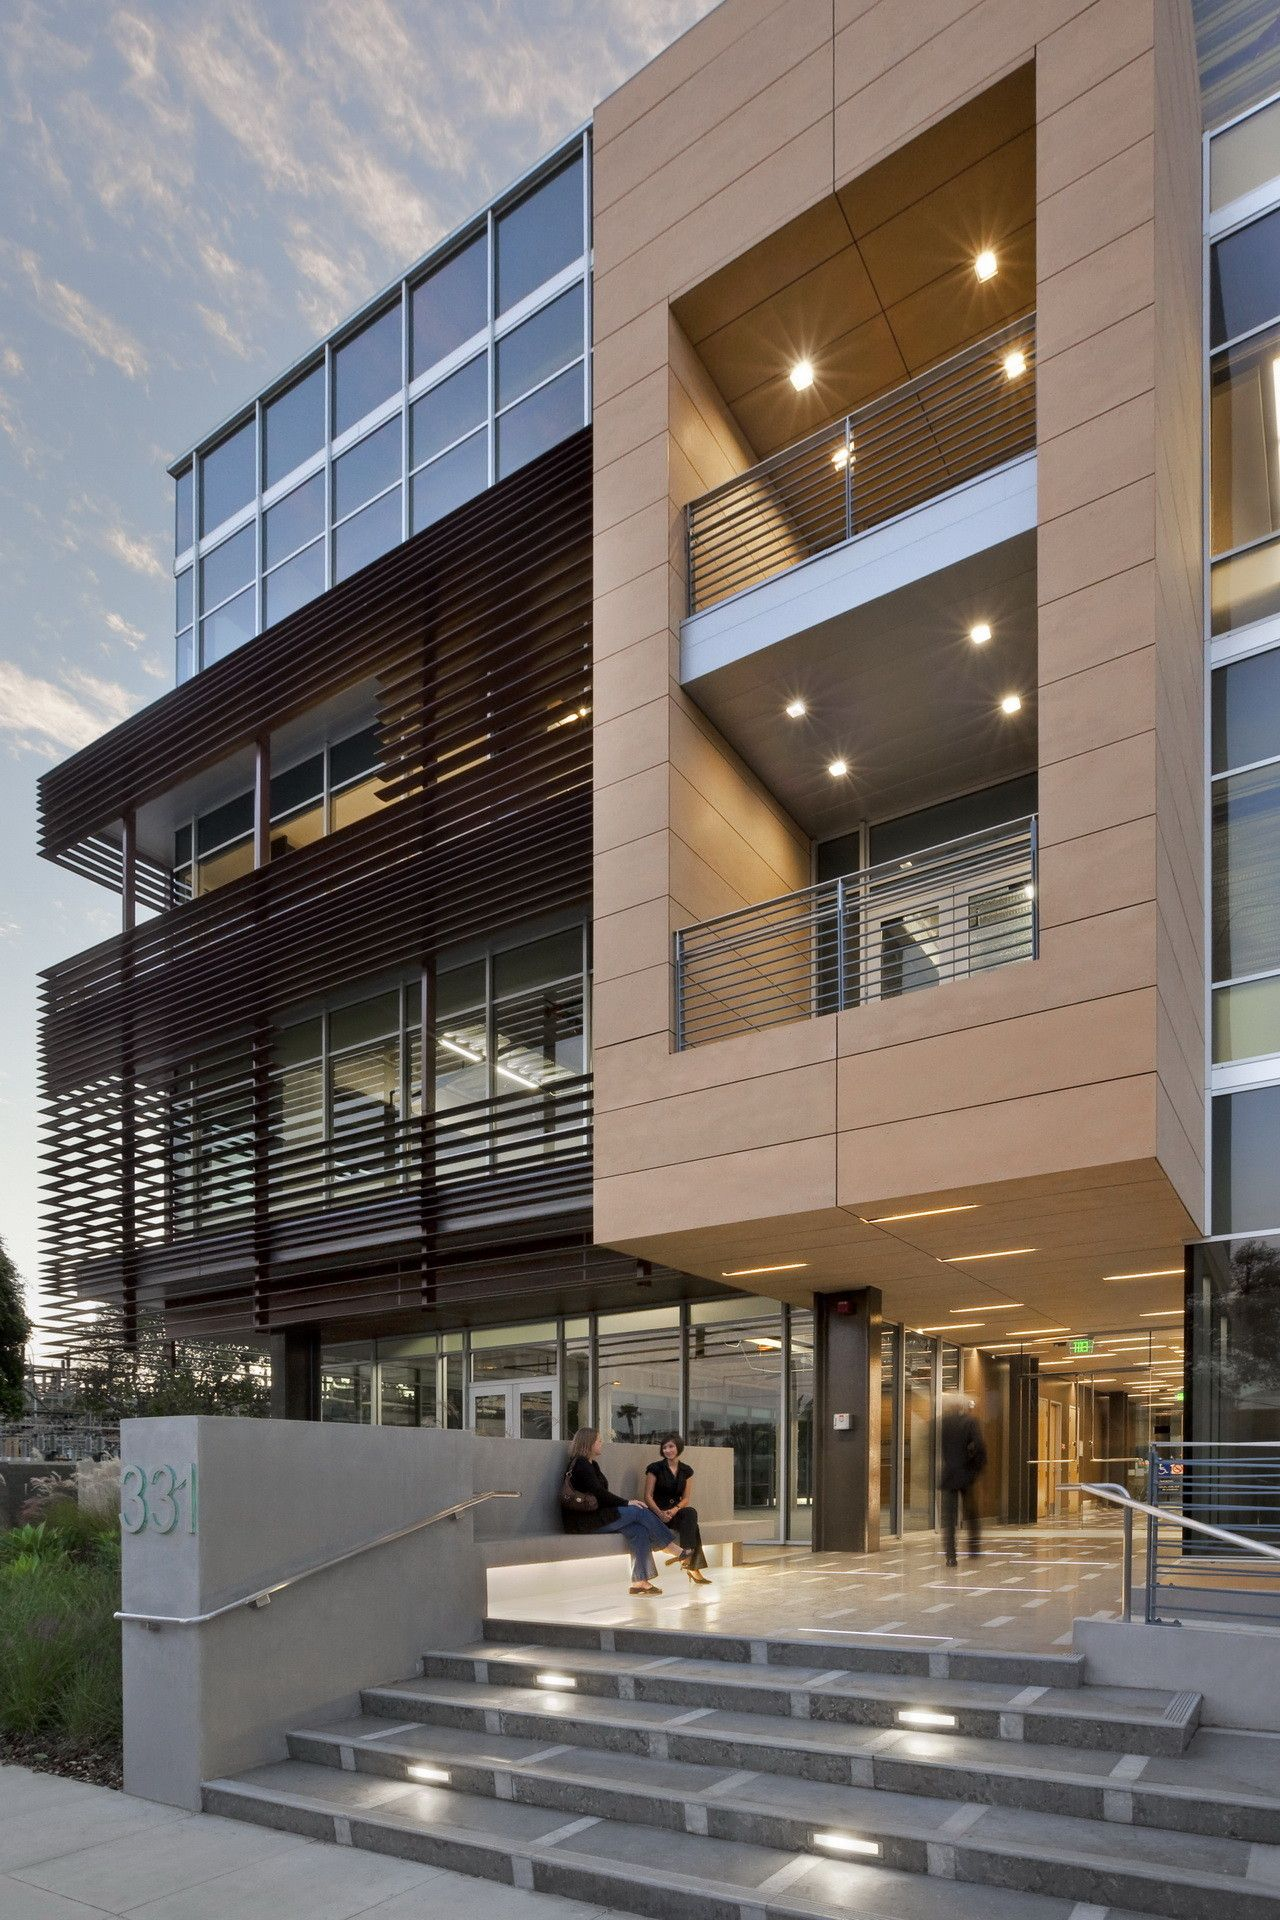 Mehrabad House Sarsayeh Architectural Office: Gallery Of 331 Foothill Road Office Building / Ehrlich Yanai Rhee Chaney Architects